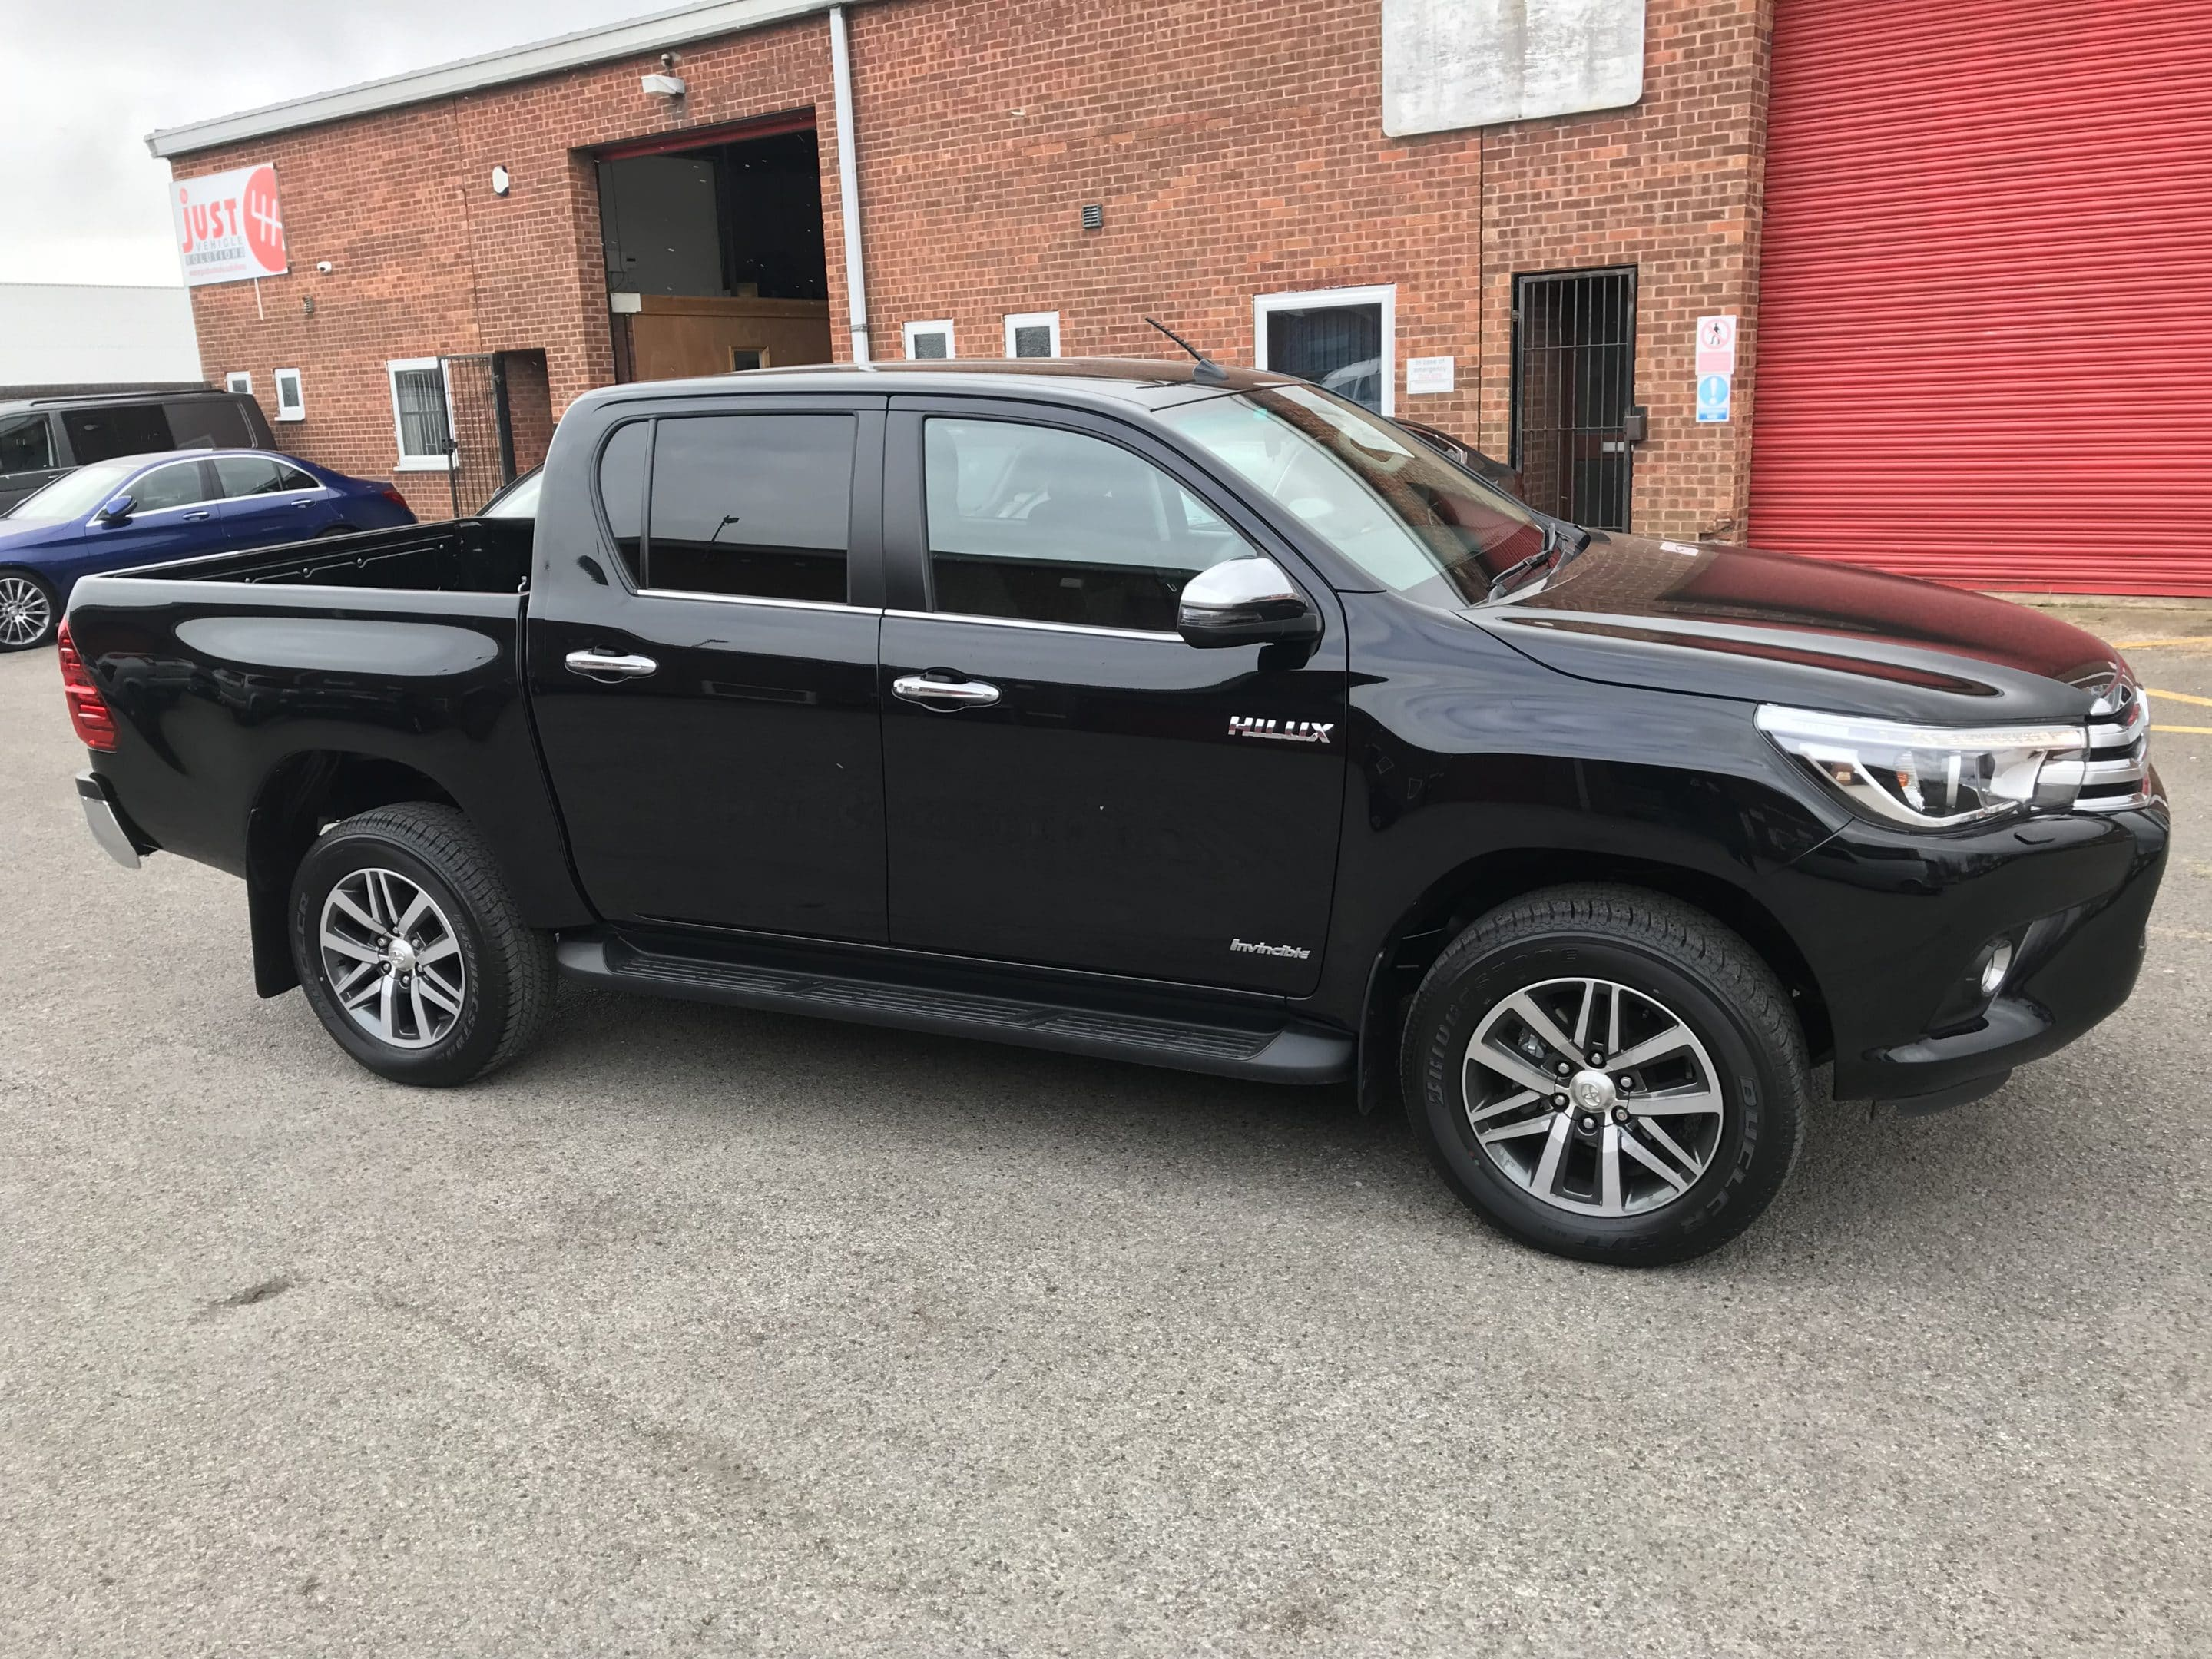 Toyota Hilux Invincible D/Cab 2.4 Auto with tow bar and load liner